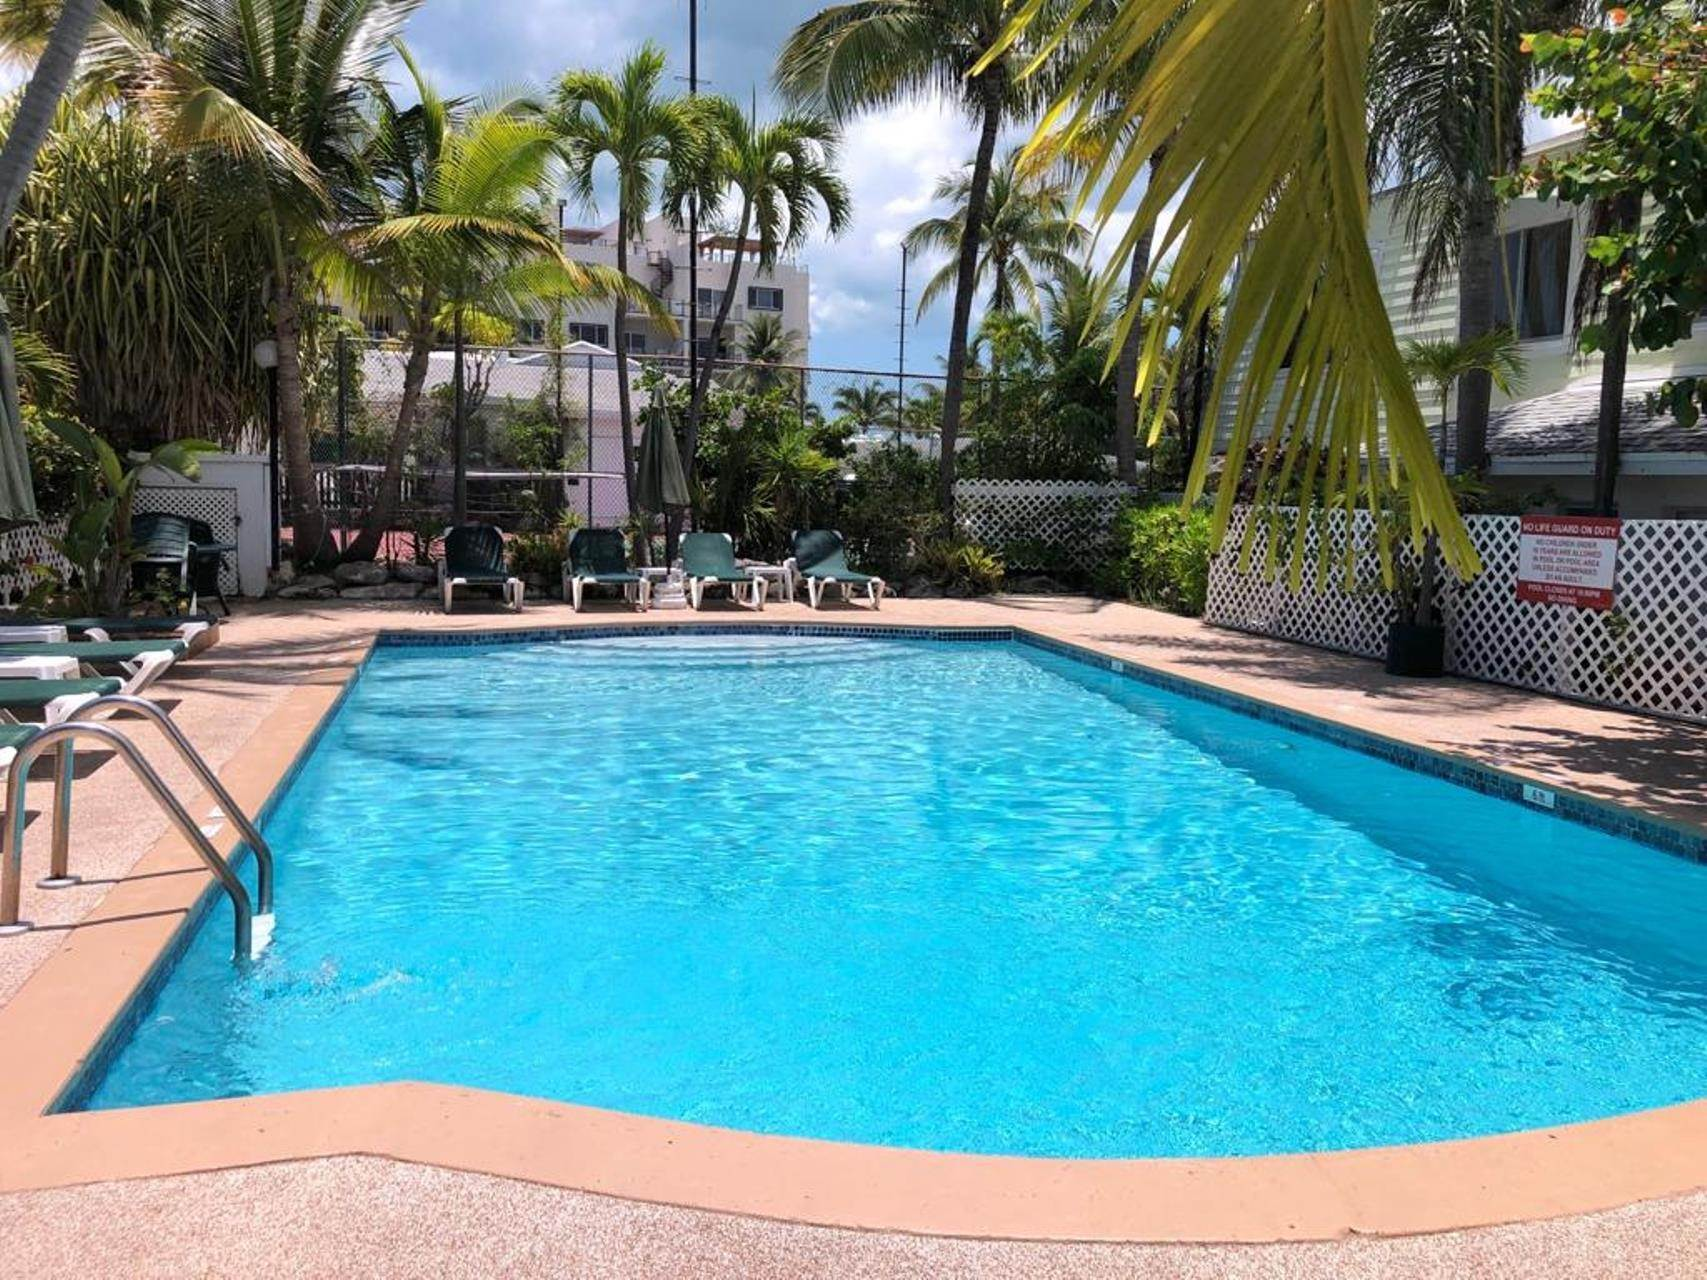 Co-op / Condo for Rent at Bayview Charming Two Bedroom Condo on Paradise Island - MLS 40410 Paradise Island, Nassau And Paradise Island, Bahamas